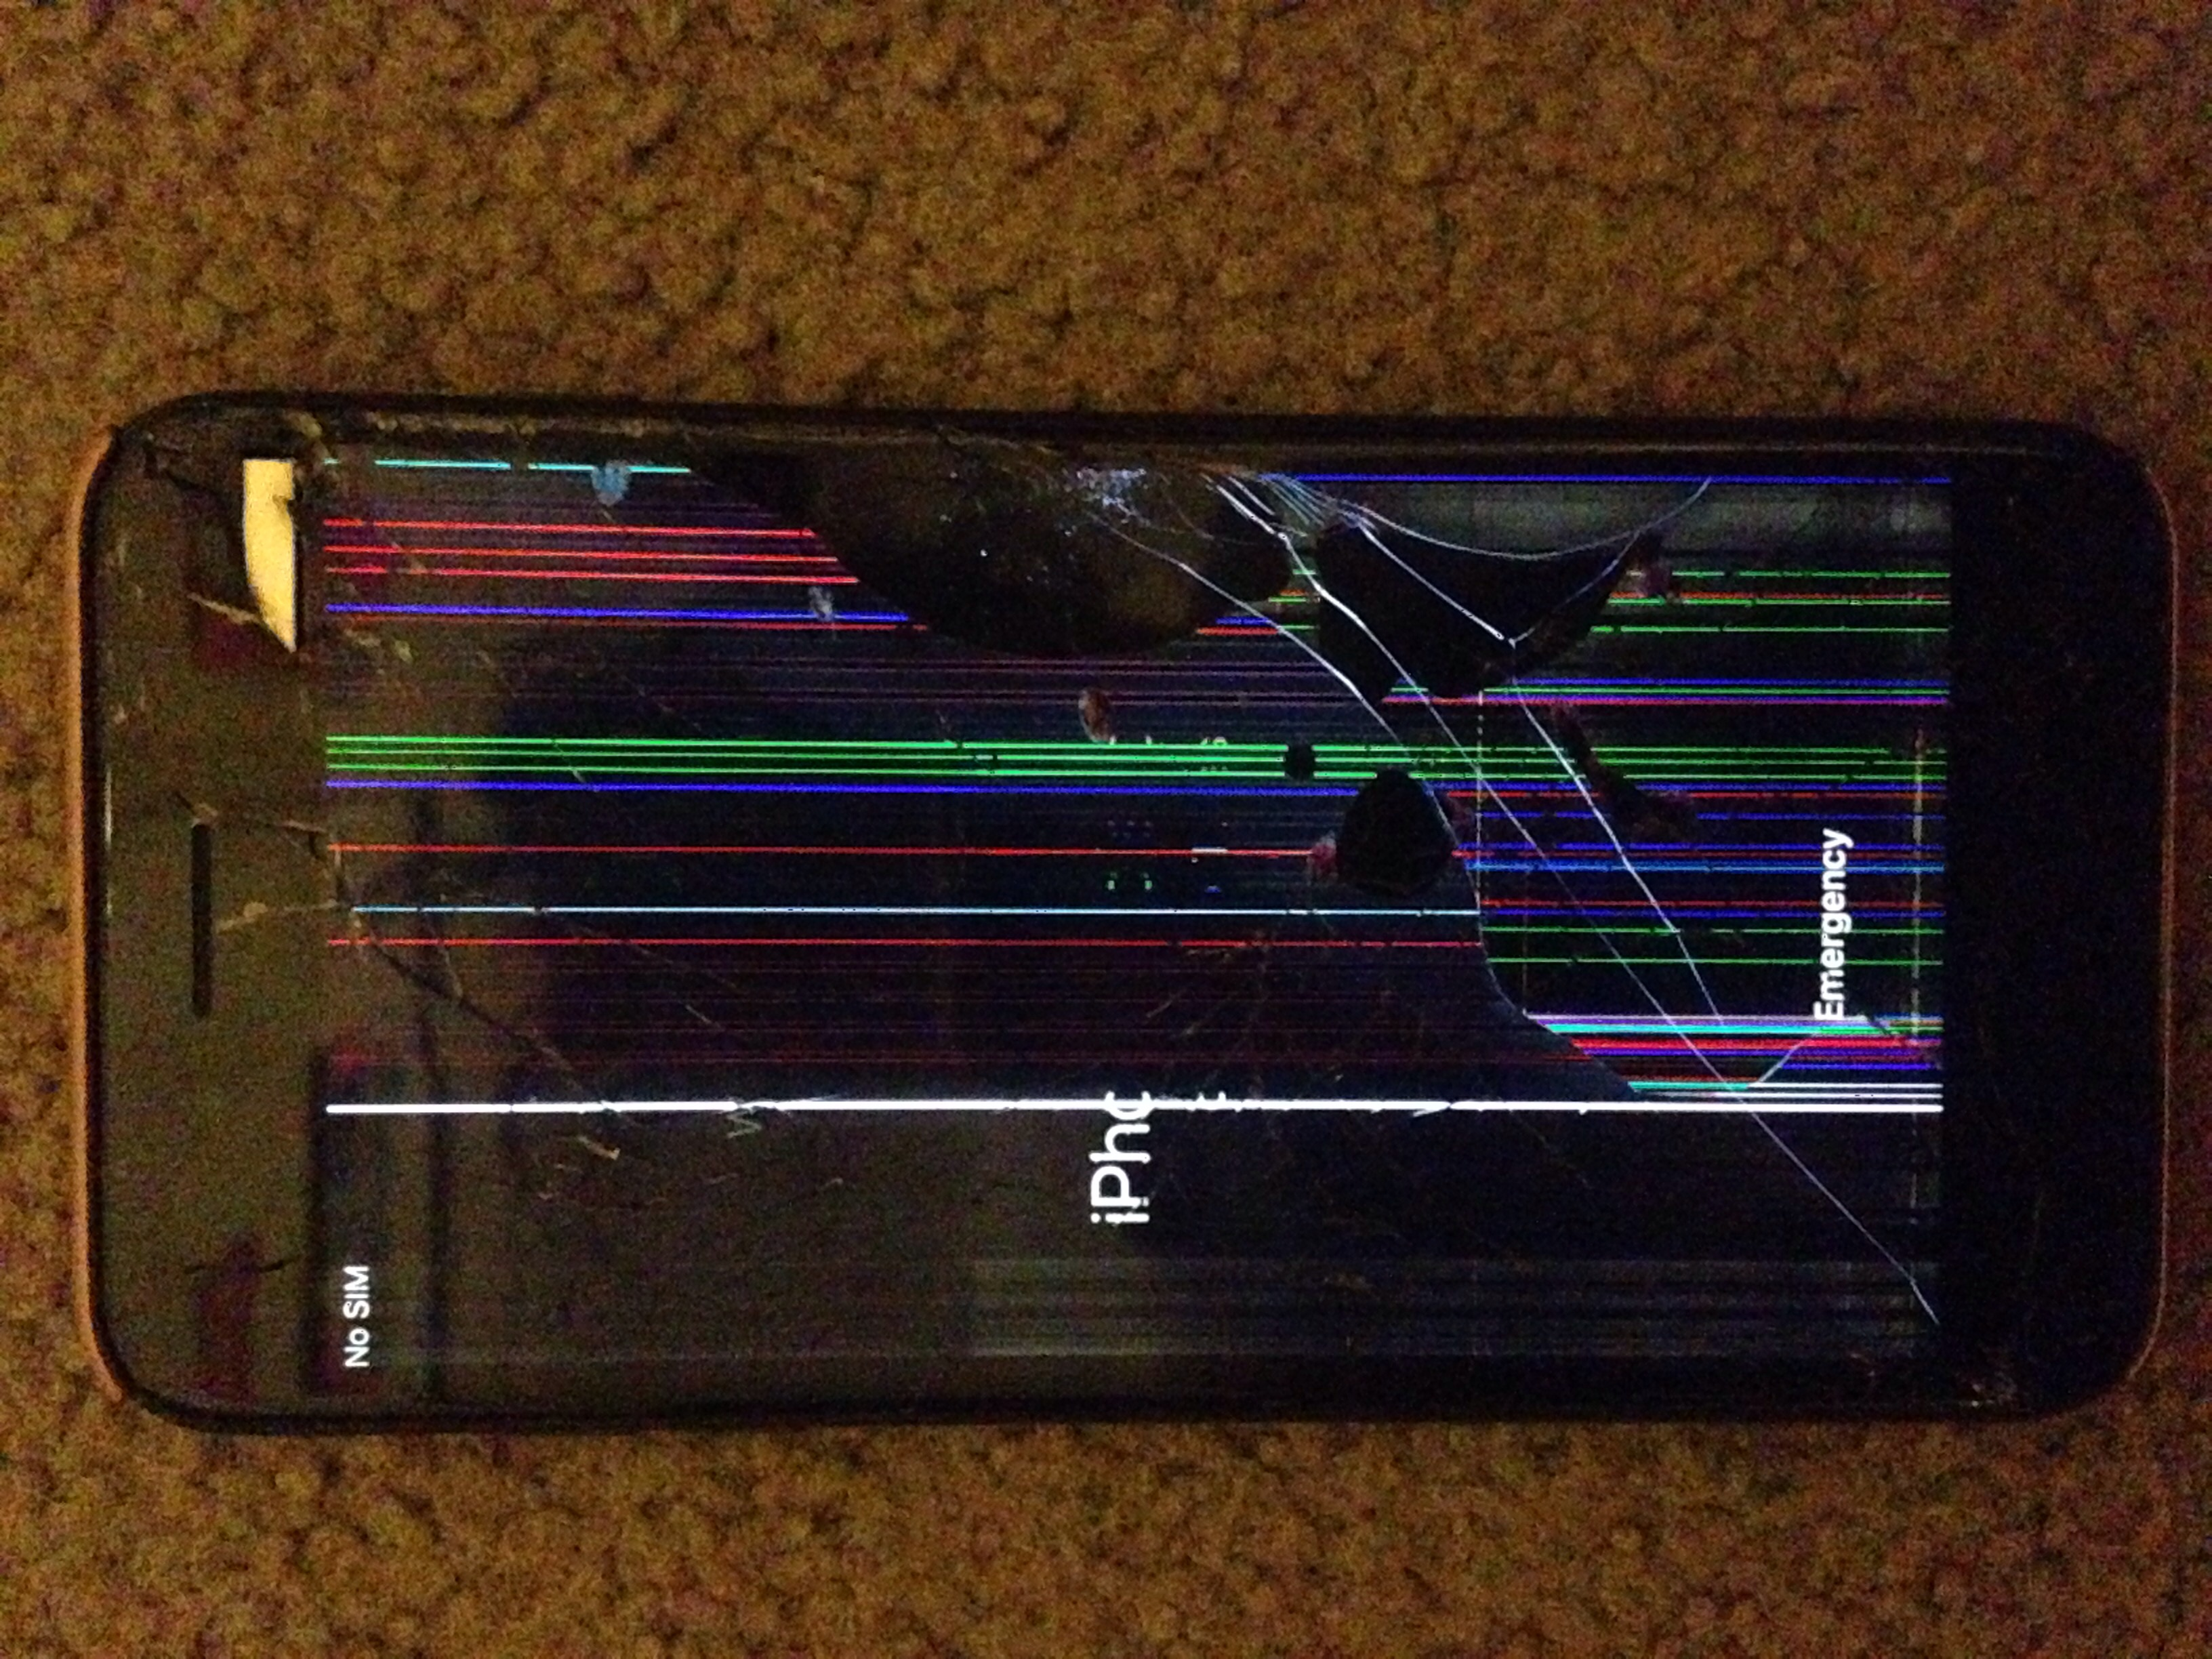 My iPhone has a cracked screen and colour… - Apple Community